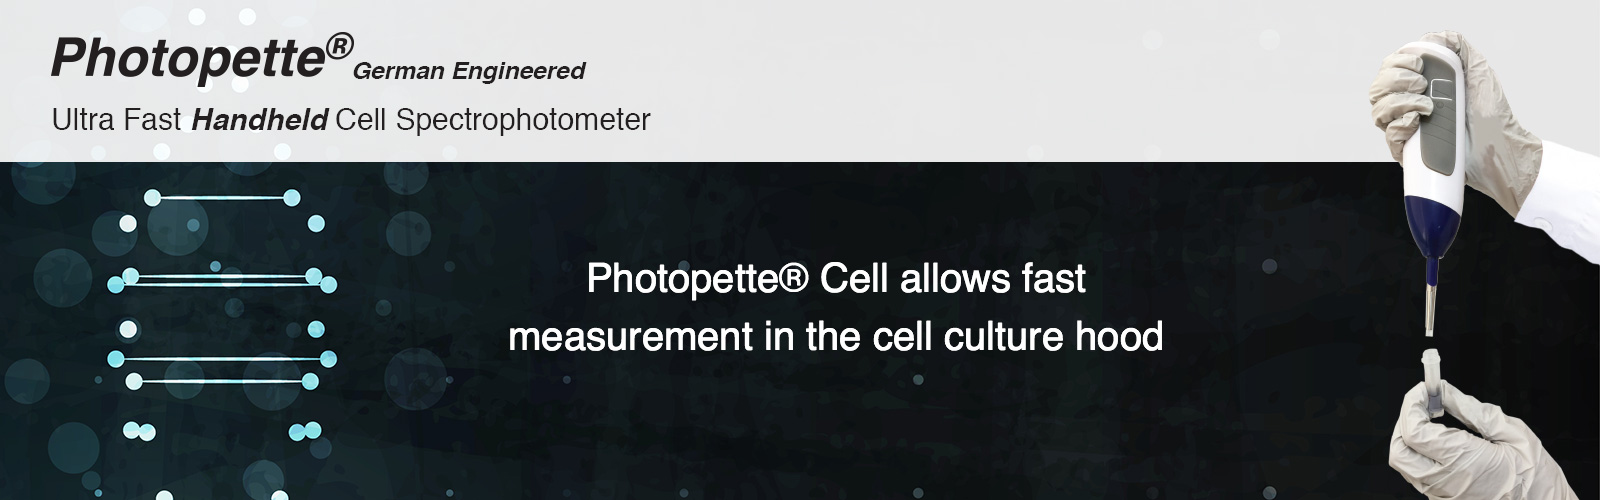 Photopette Cell Header